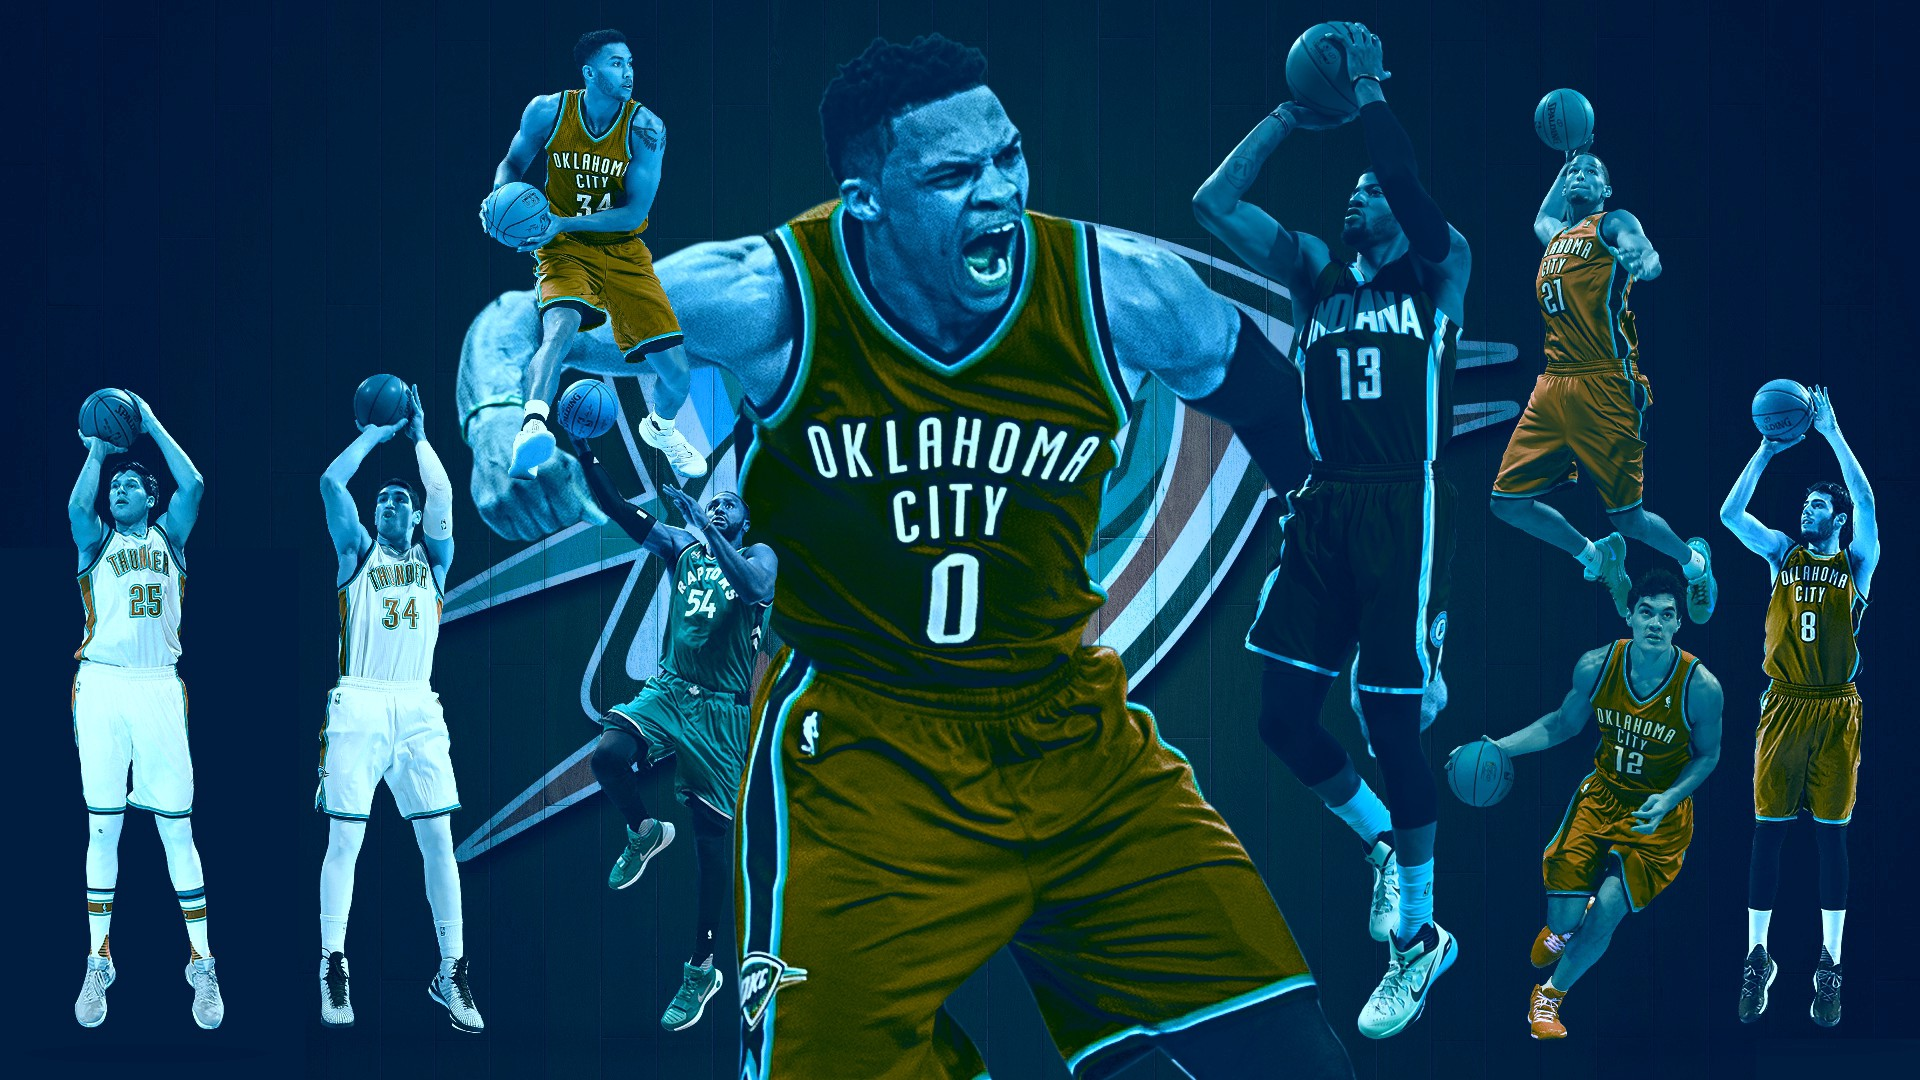 Oklahoma City Thunder Latest News Images And Photos CrypticImages